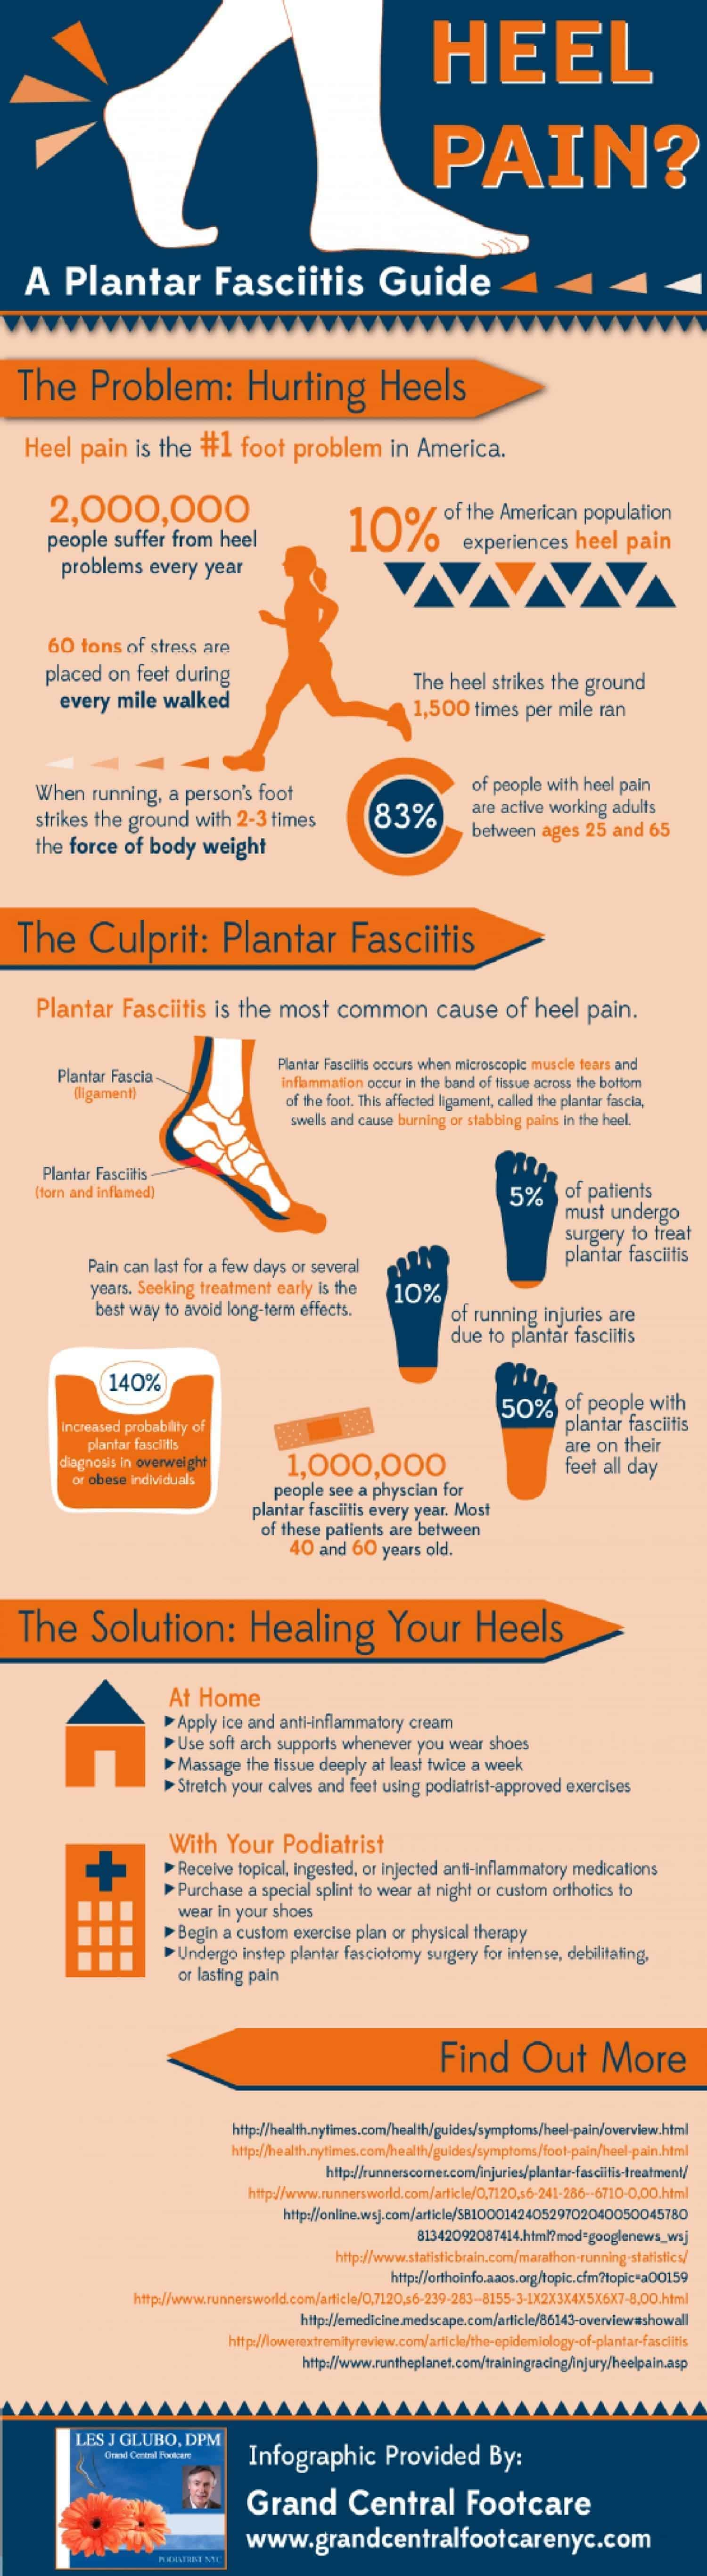 the symptoms and treatment of plantar fasciitis Treatment for plantar fasciitis: self-care treatments can help reduce the pain and inflammation linked with plantar fasciitis in some cases, home treatments may be all that are needed to reduce.